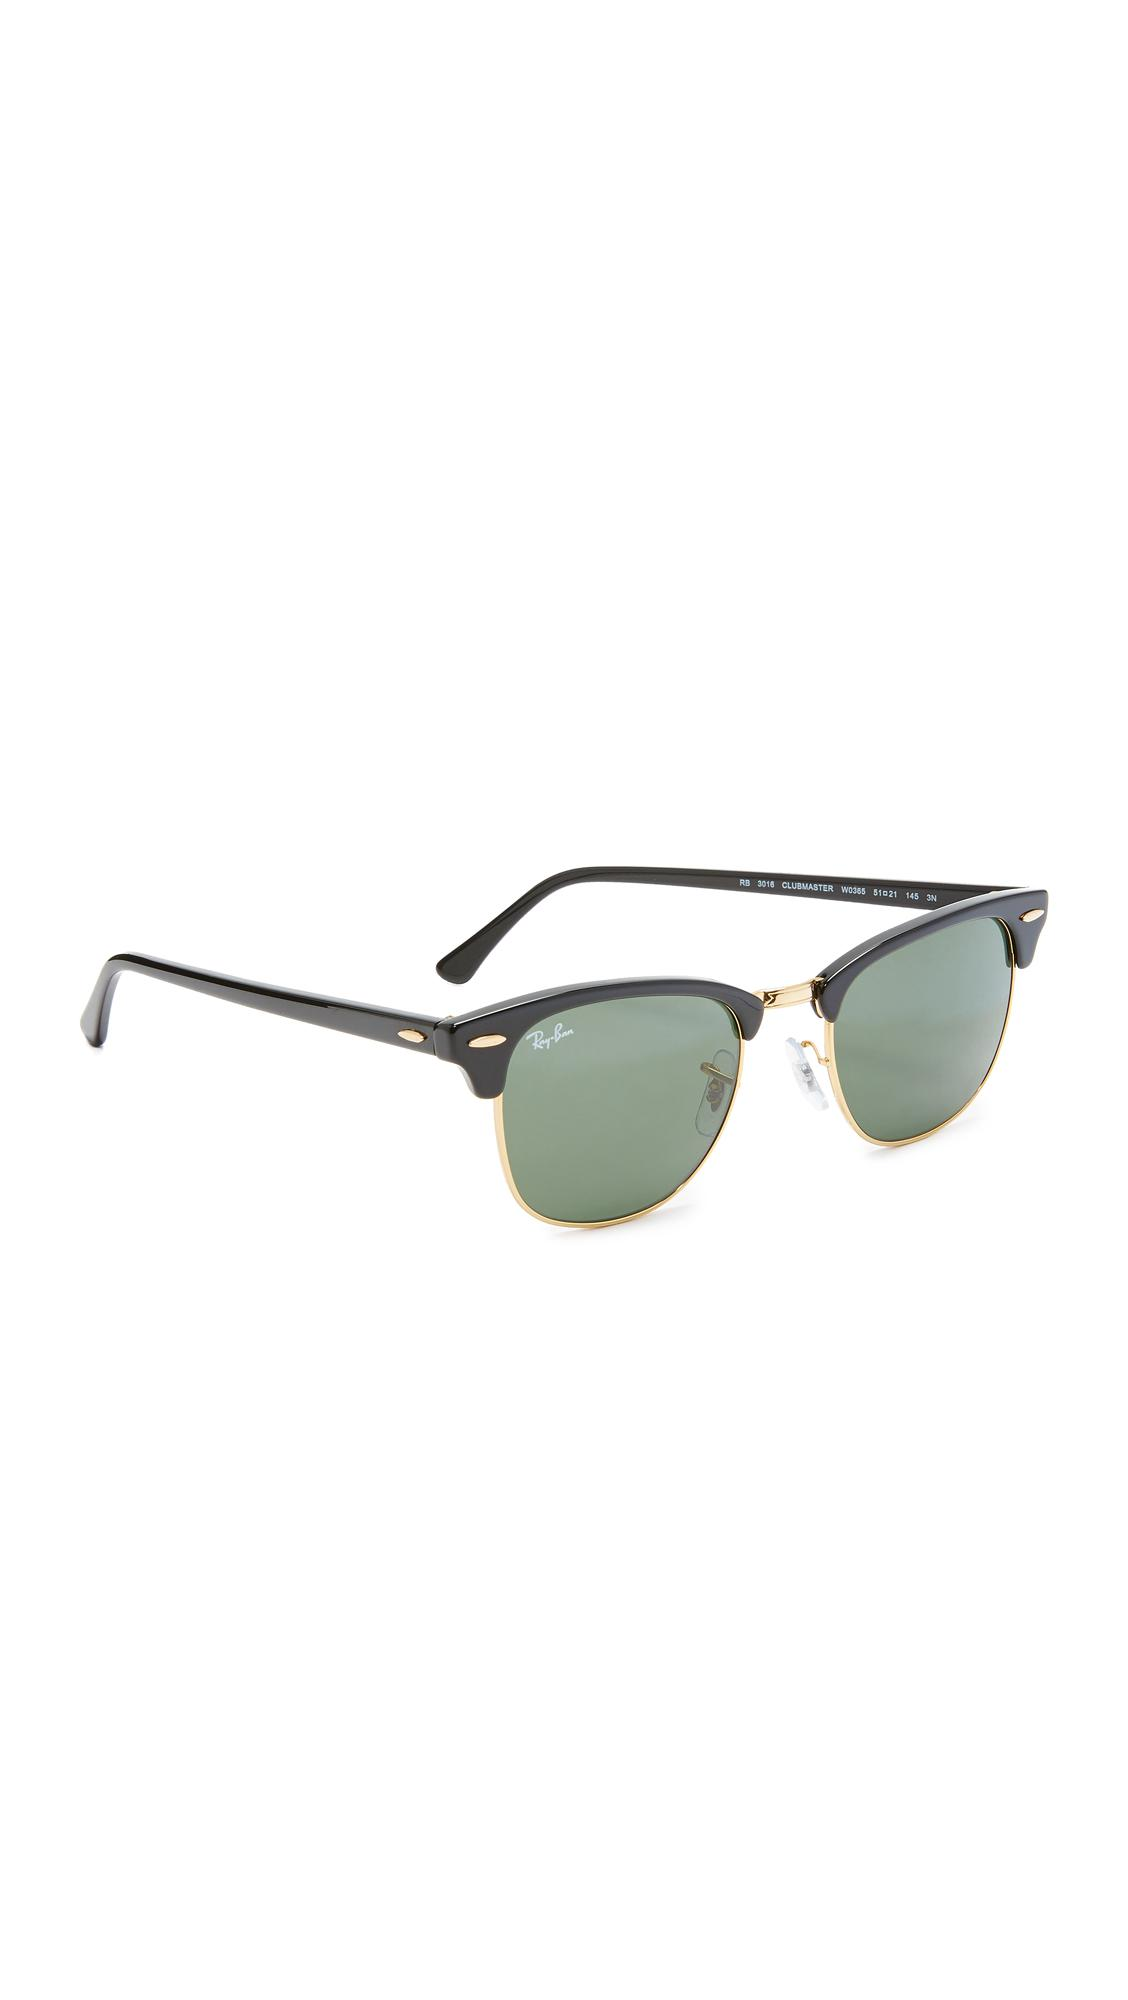 8659c35c2e6efc Lyst - Ray-Ban Classic Clubmaster Sunglasses in Green - Save ...